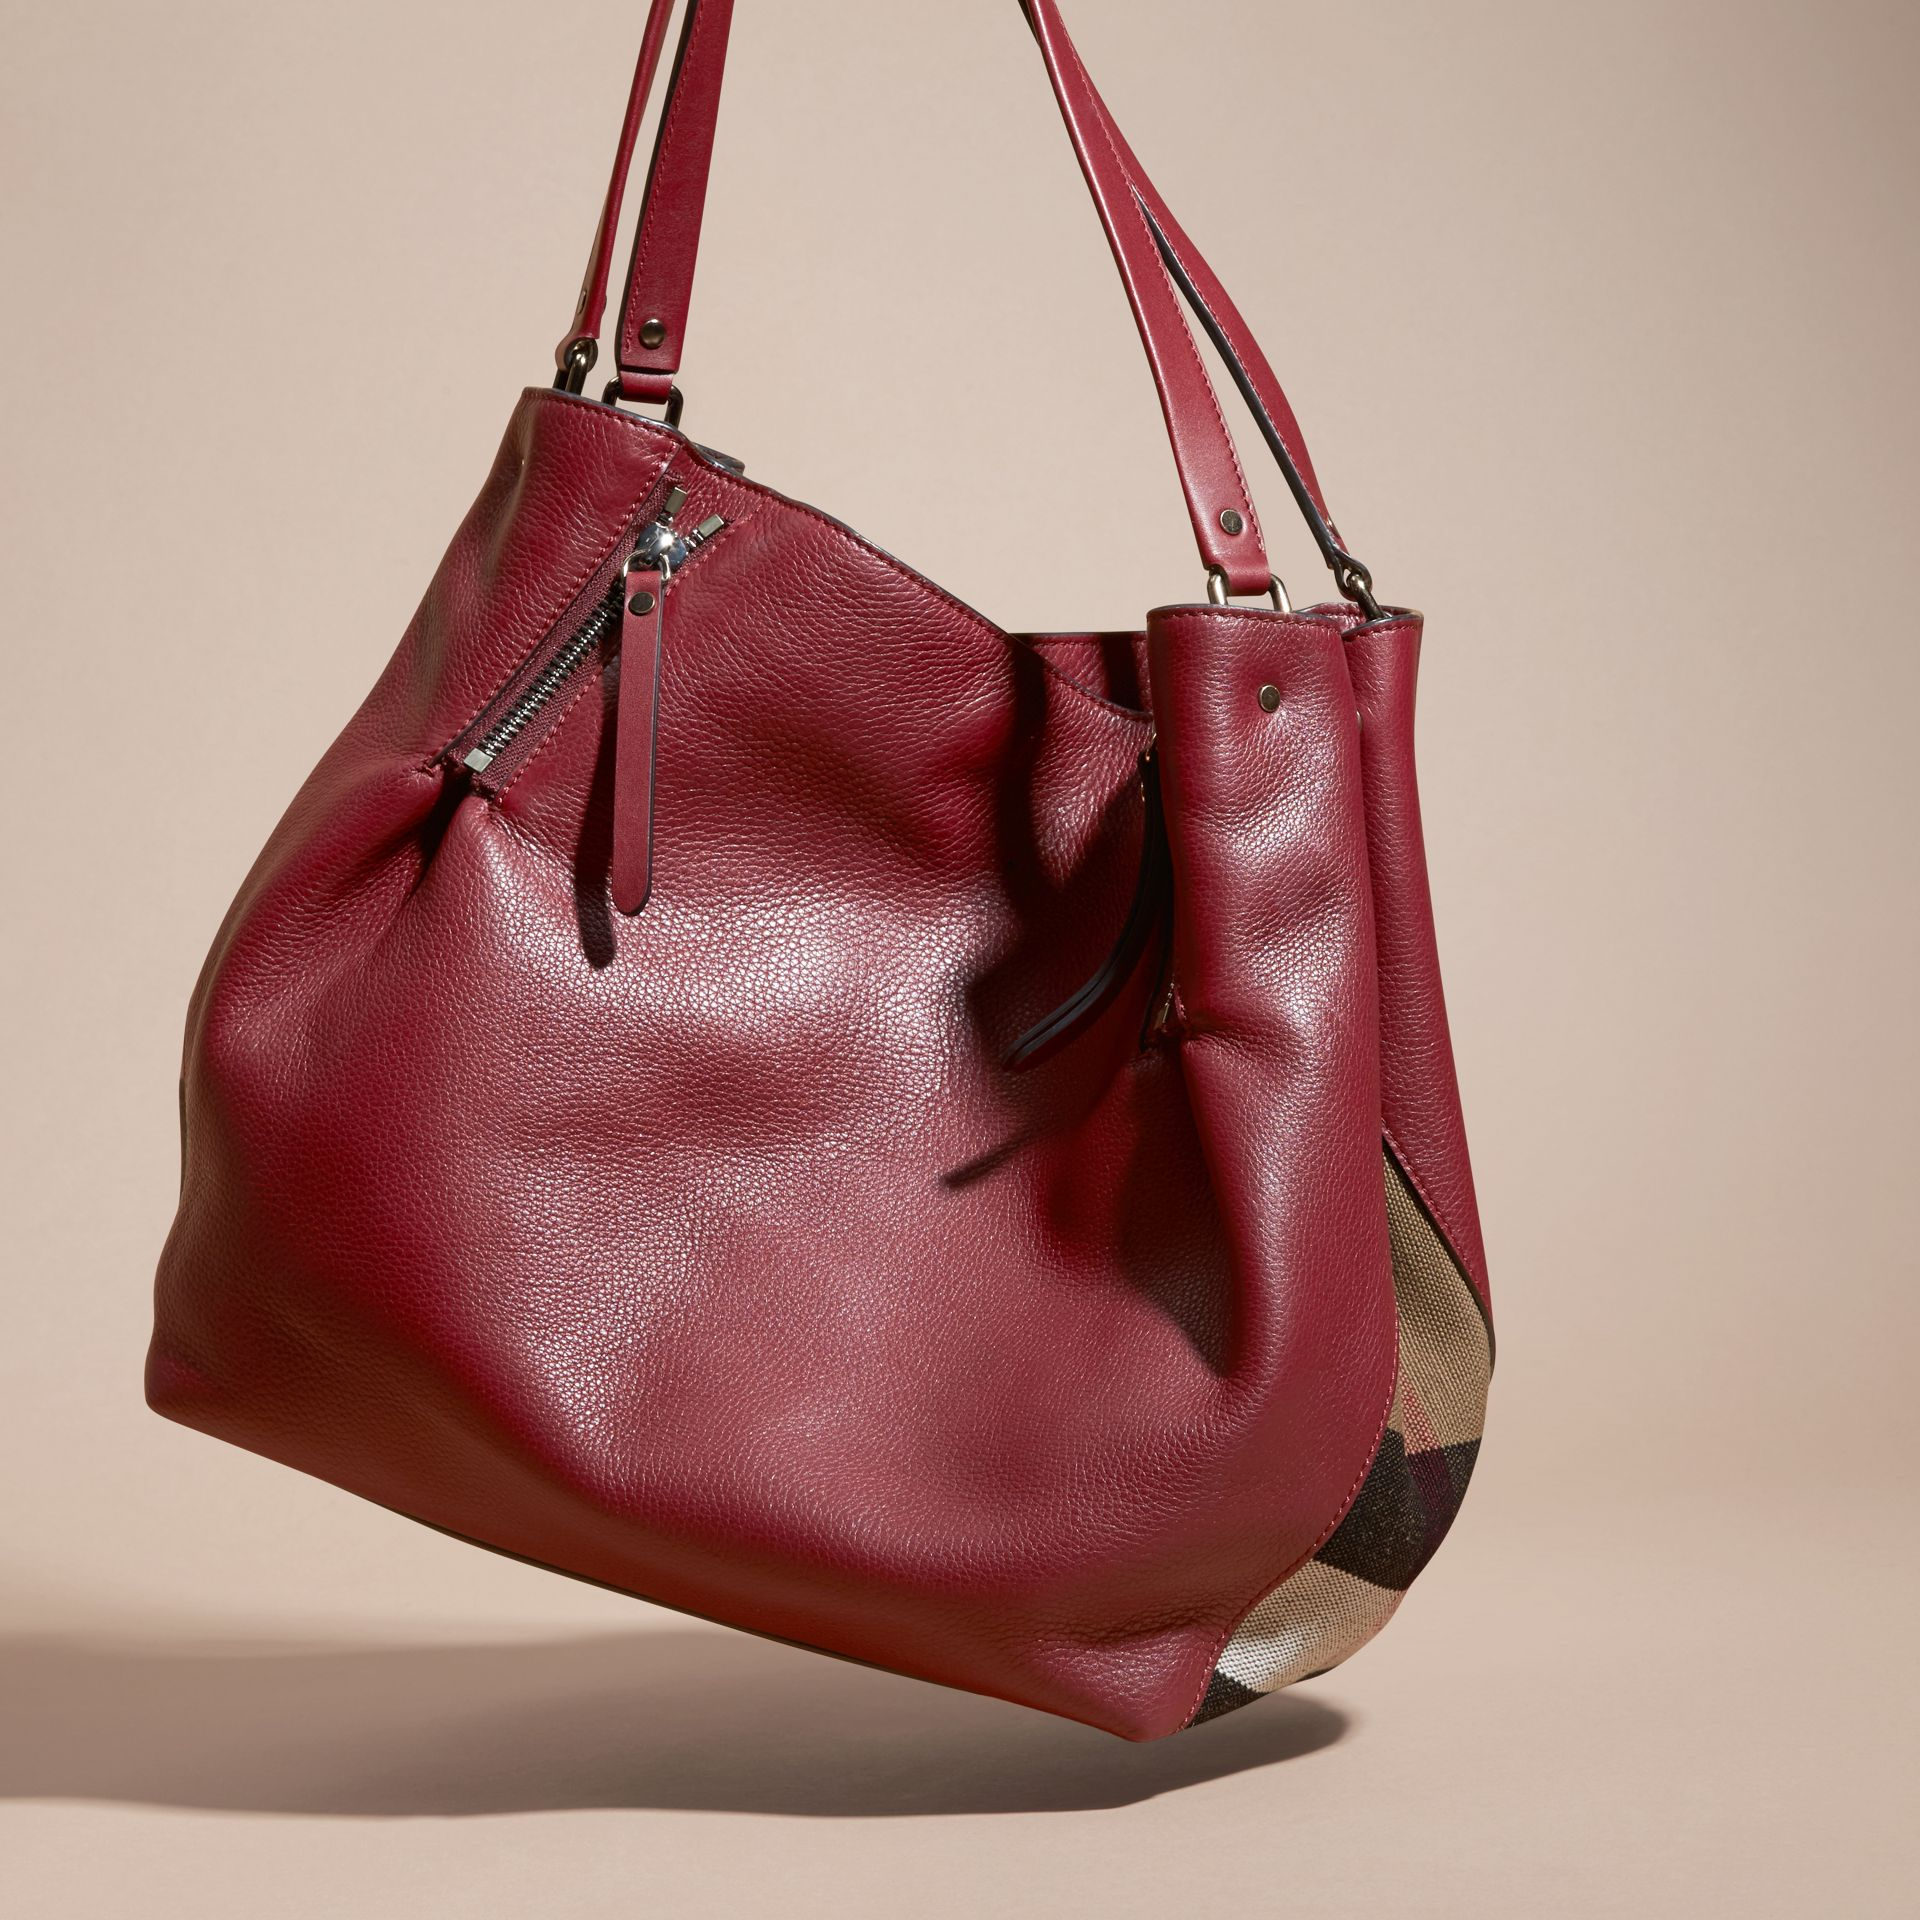 Rouge bourgogne Sac tote medium en cuir orné de touches check - photo de la galerie 4